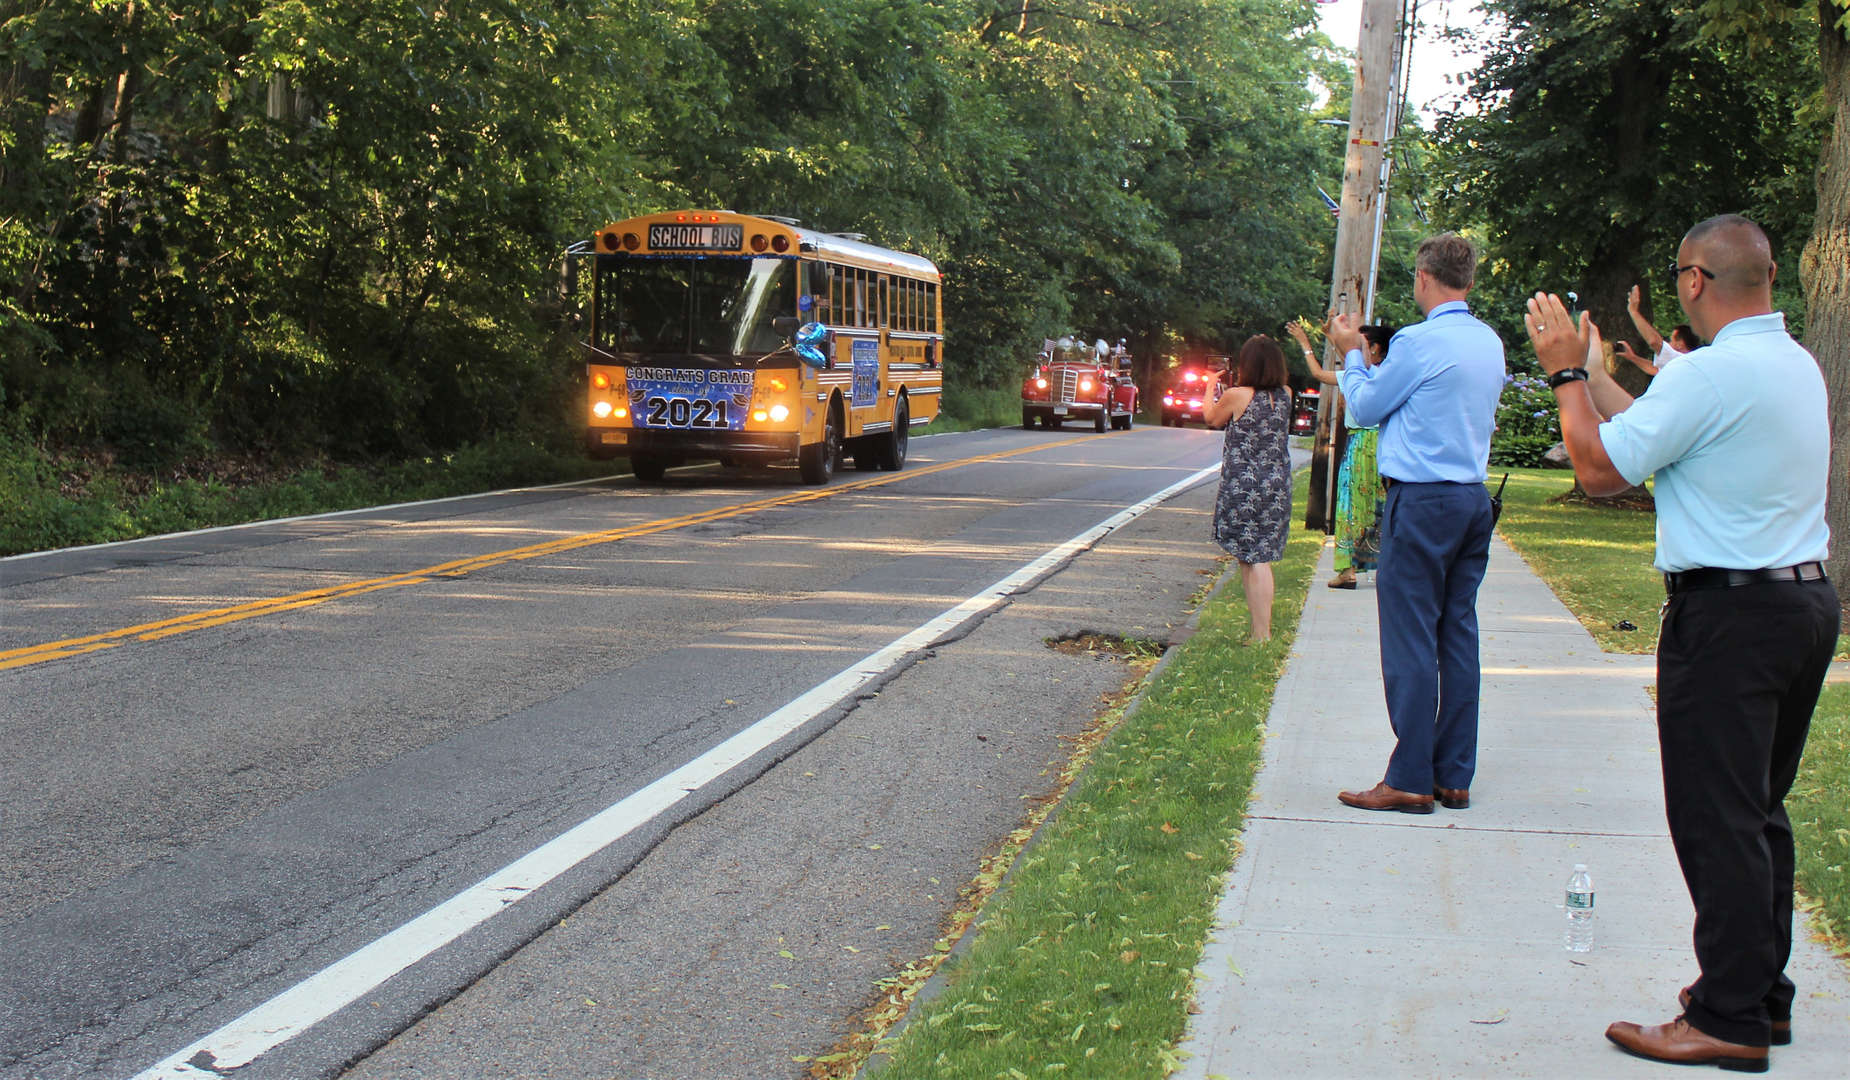 Staff members wave to car parade in front of the school.